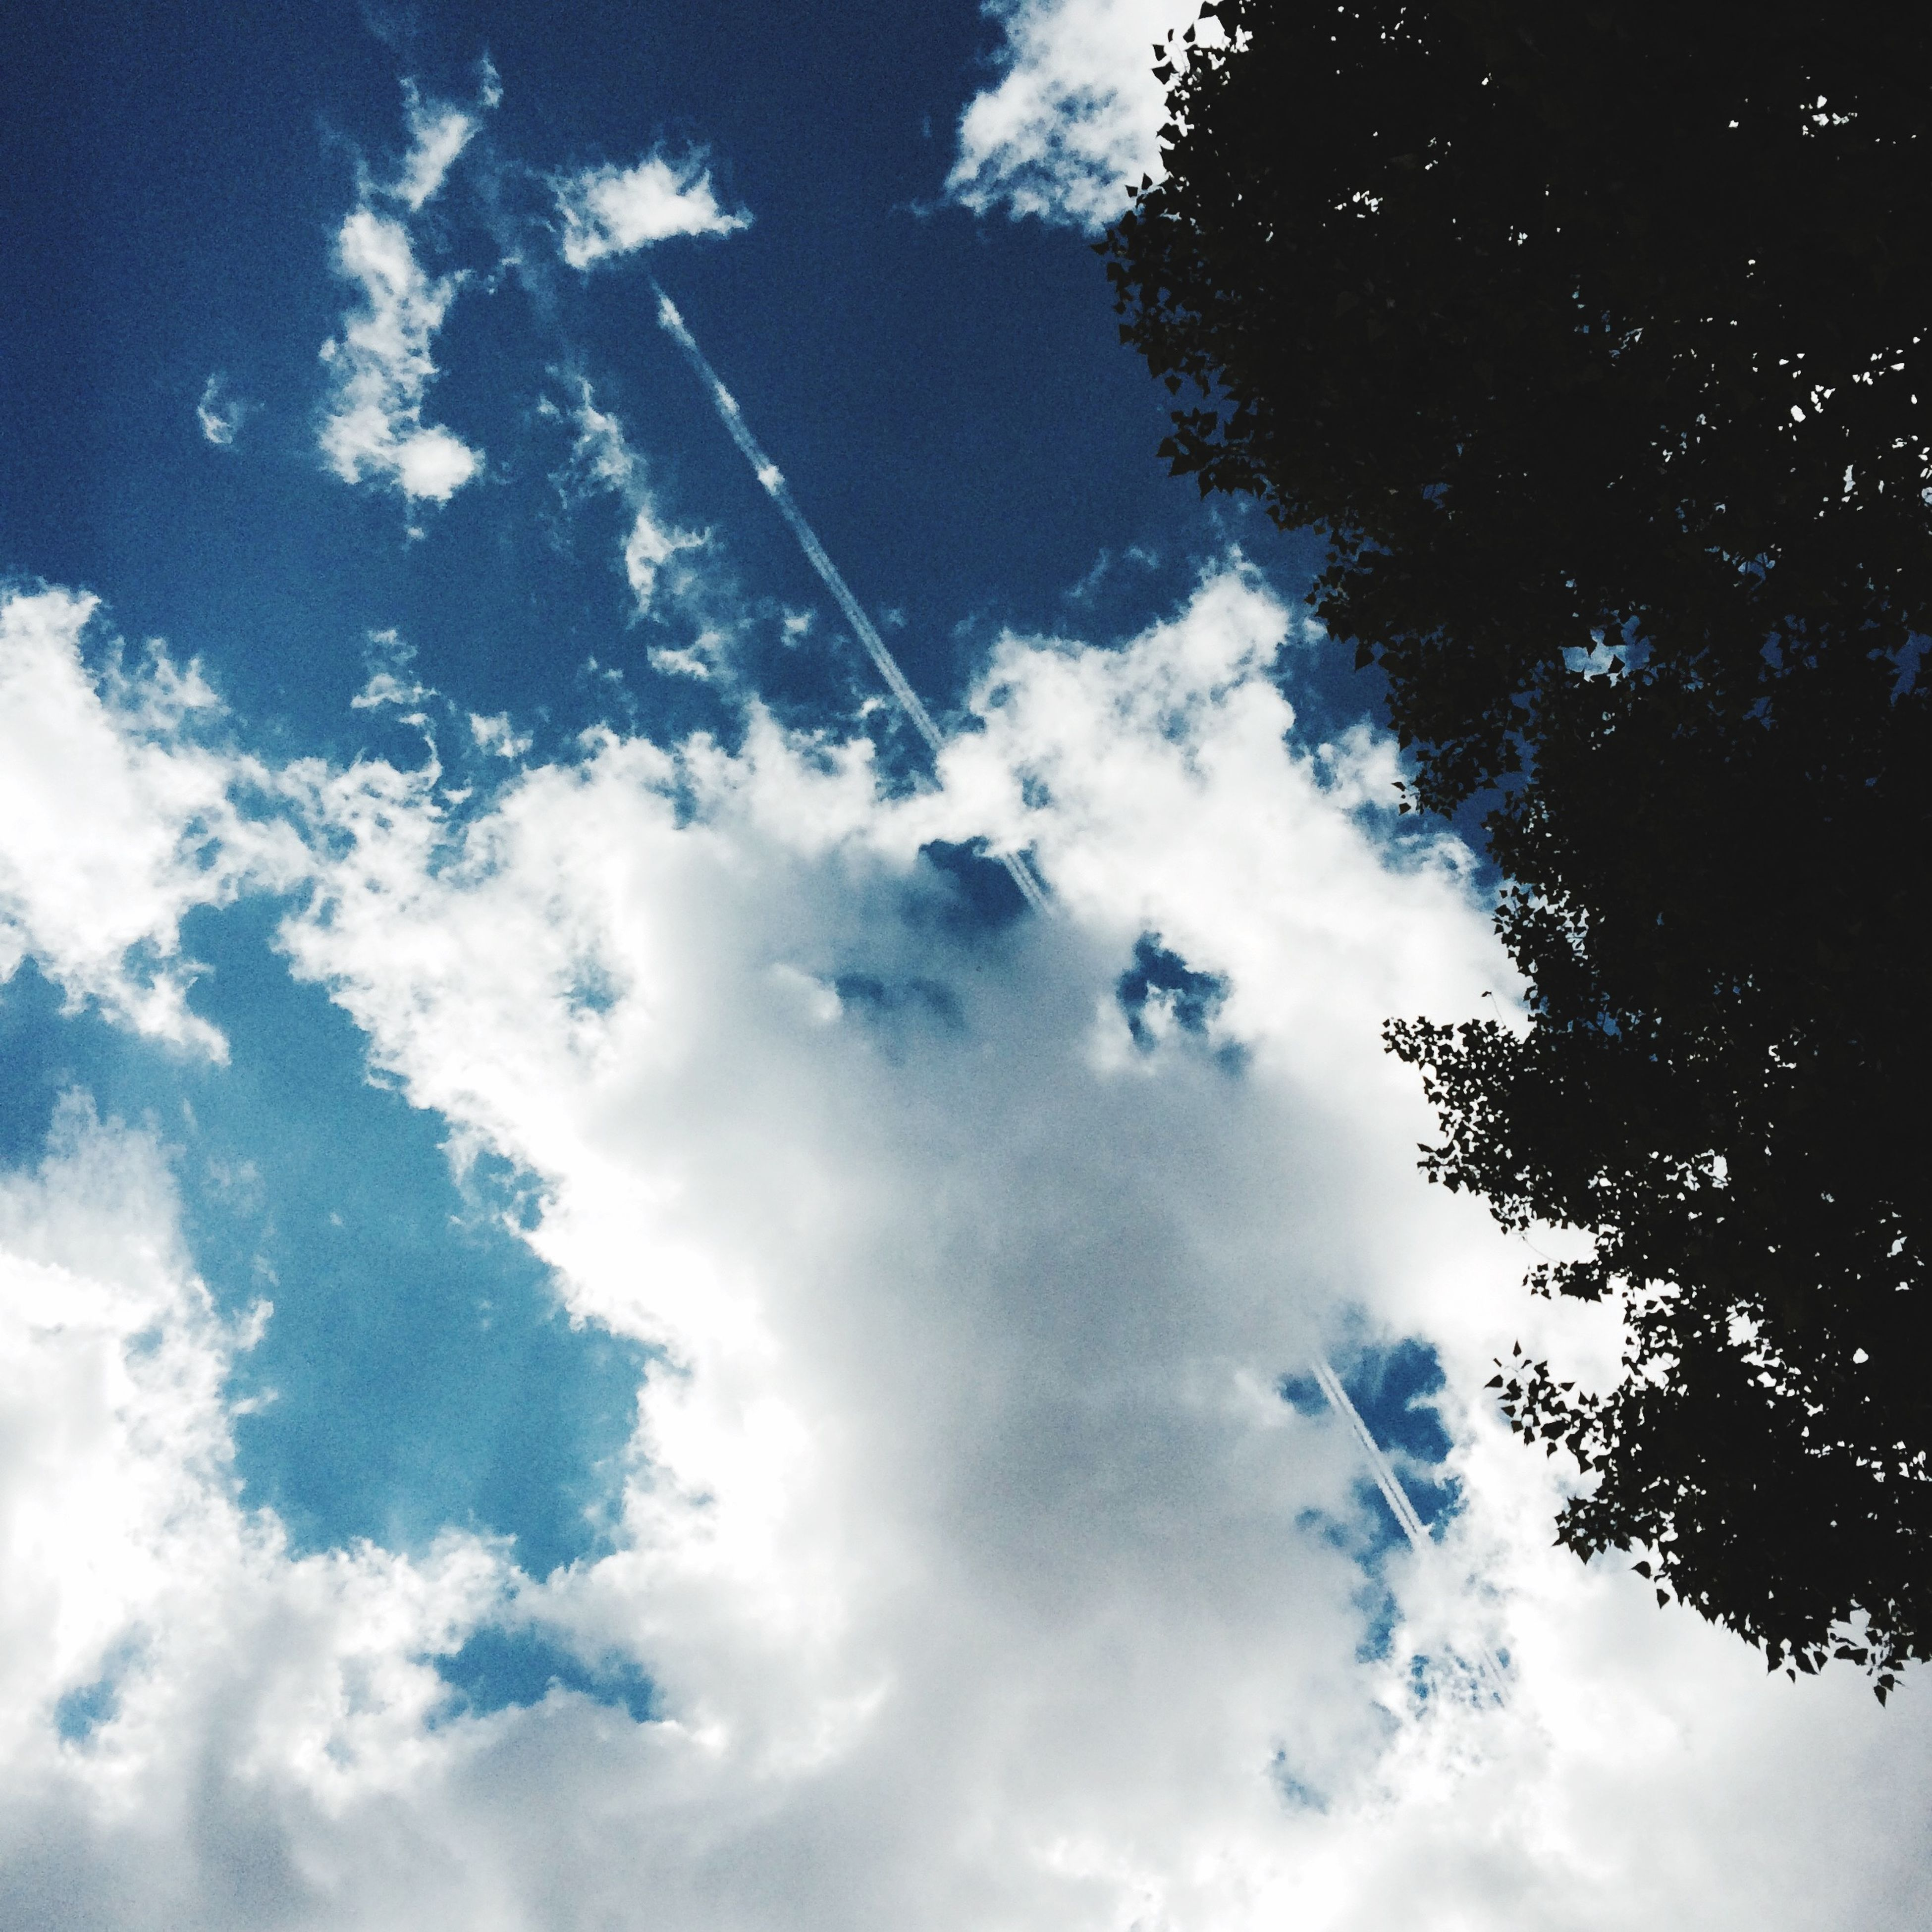 low angle view, sky, cloud - sky, tree, tranquility, beauty in nature, nature, scenics, blue, tranquil scene, cloudy, sky only, cloud, cloudscape, outdoors, day, idyllic, no people, backgrounds, silhouette